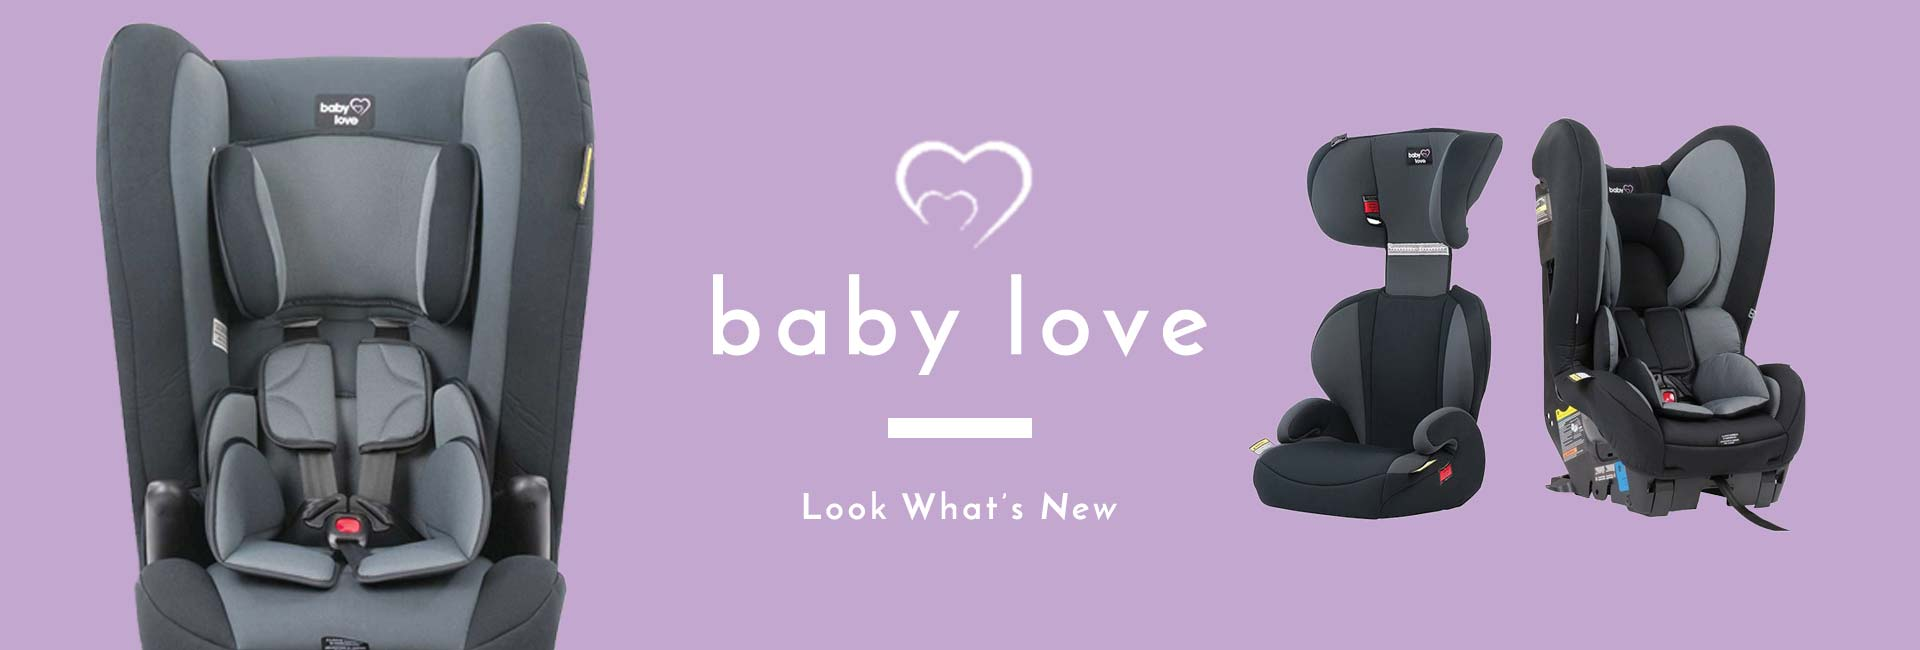 Check out our New Baby Love Car Seat and Booster range available online and instore